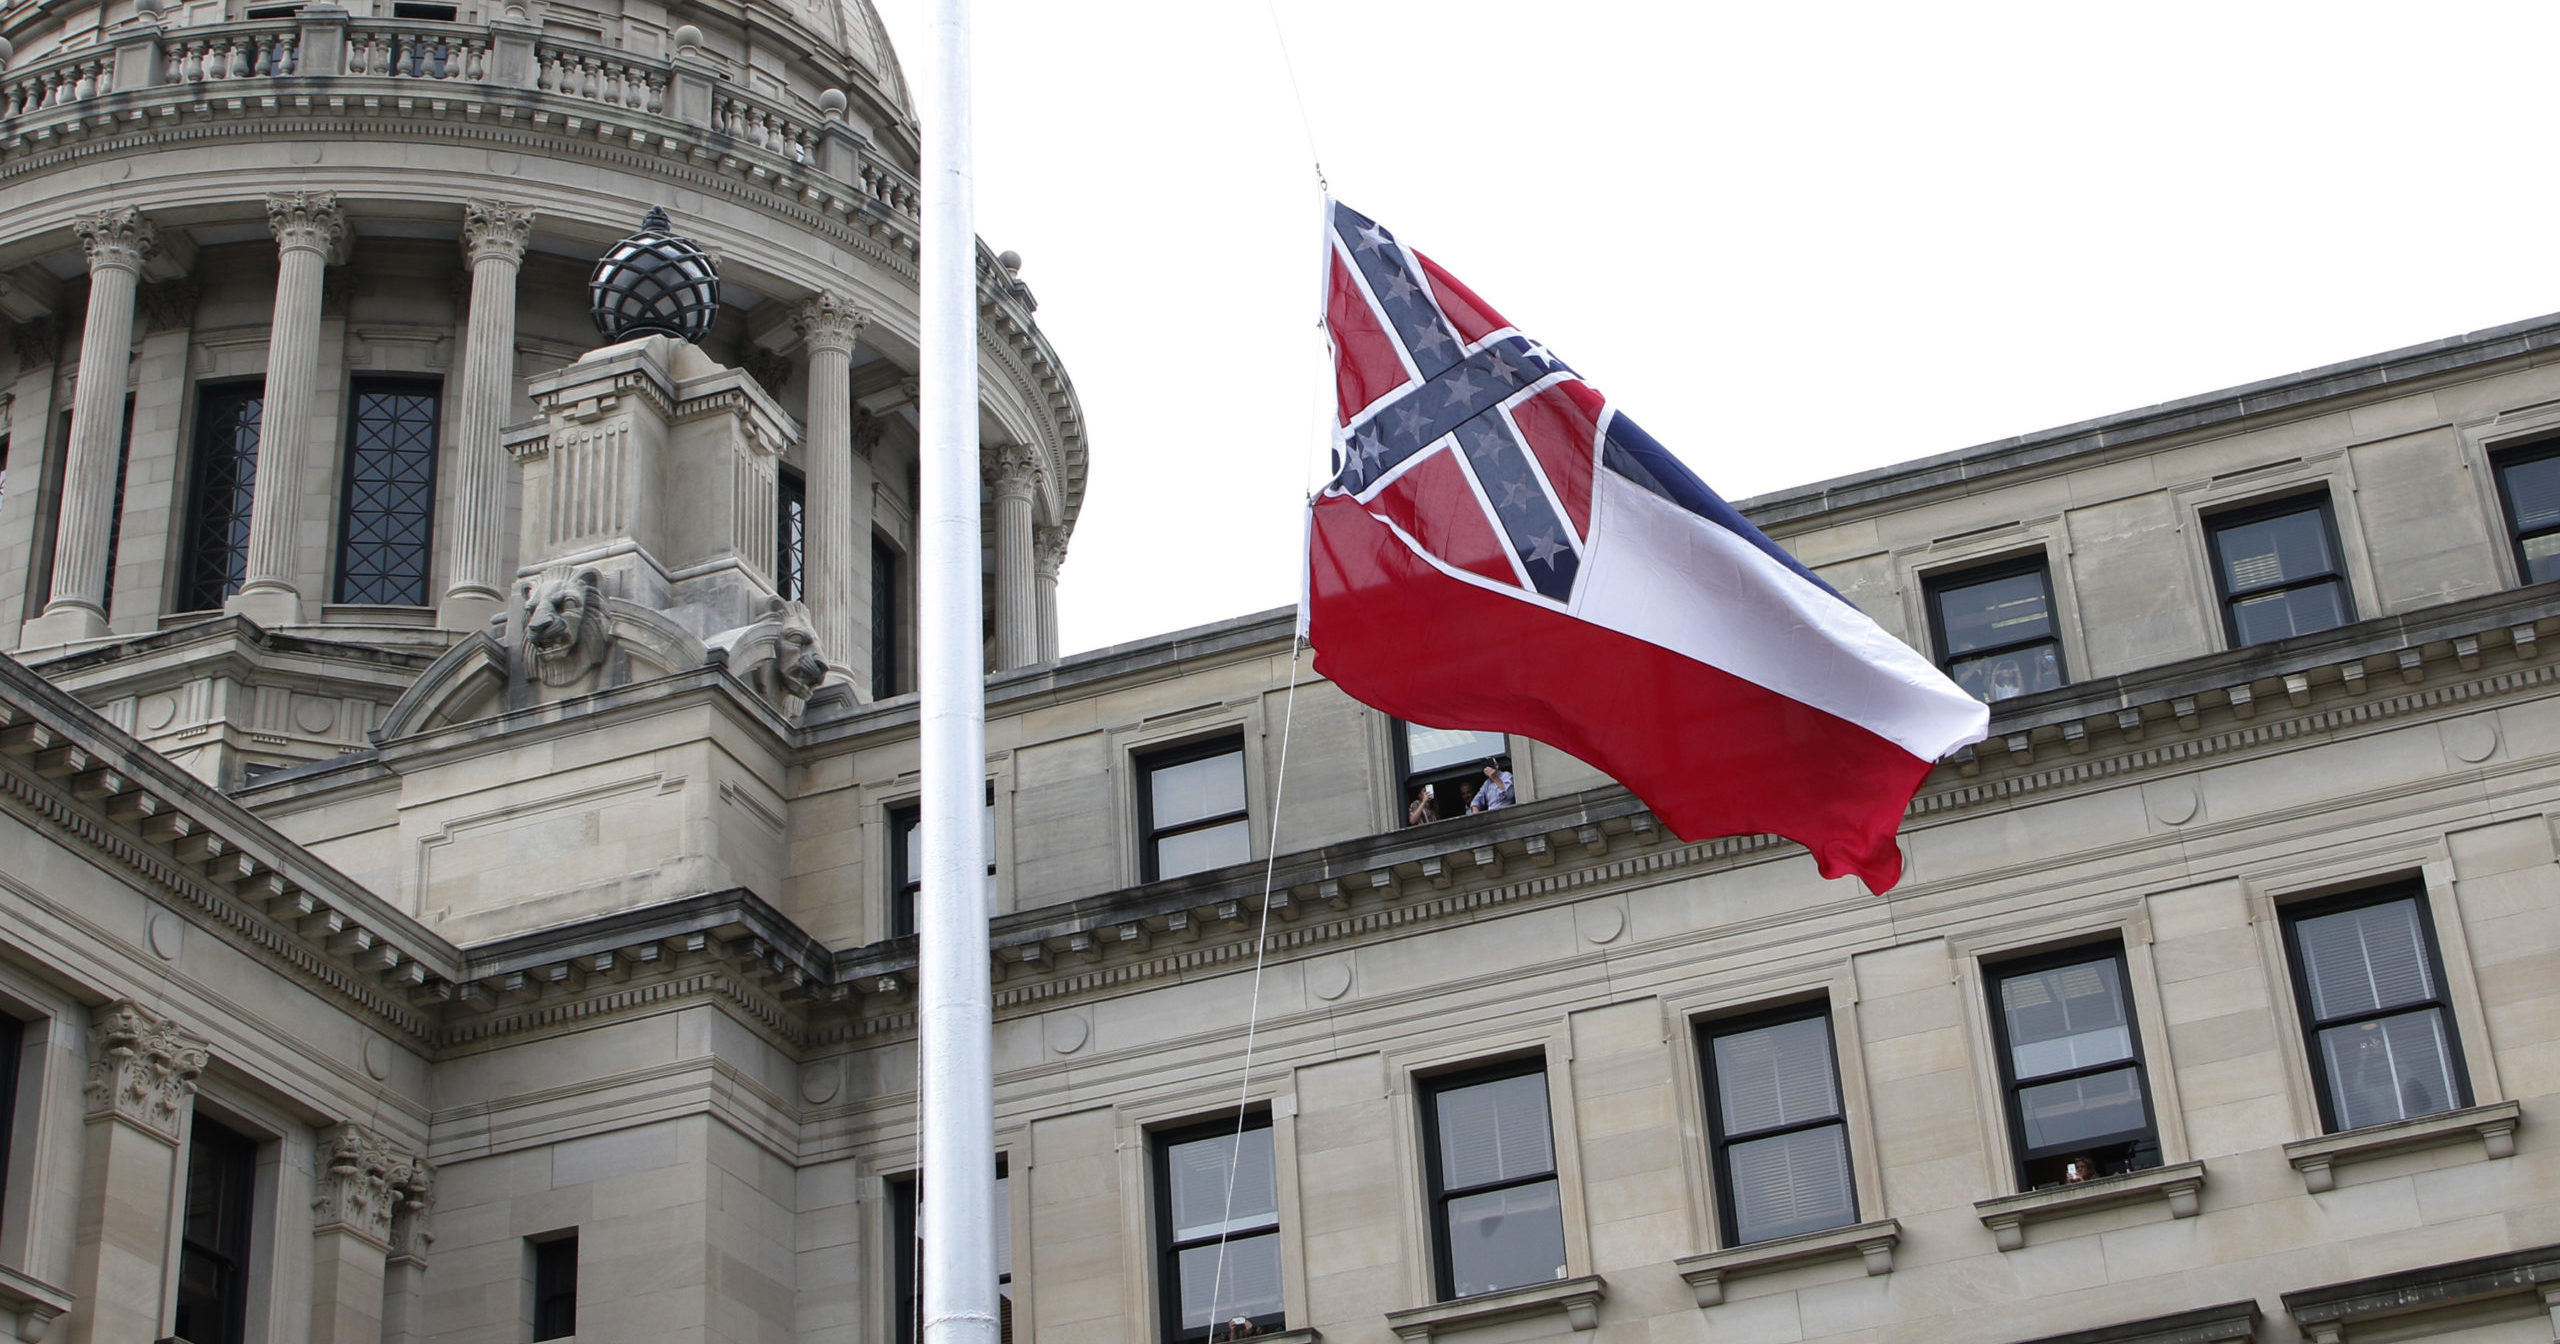 The retired Mississippi state flag is raised over the Capitol grounds one final time in Jackson, Mississippi, on July 1, 2020.